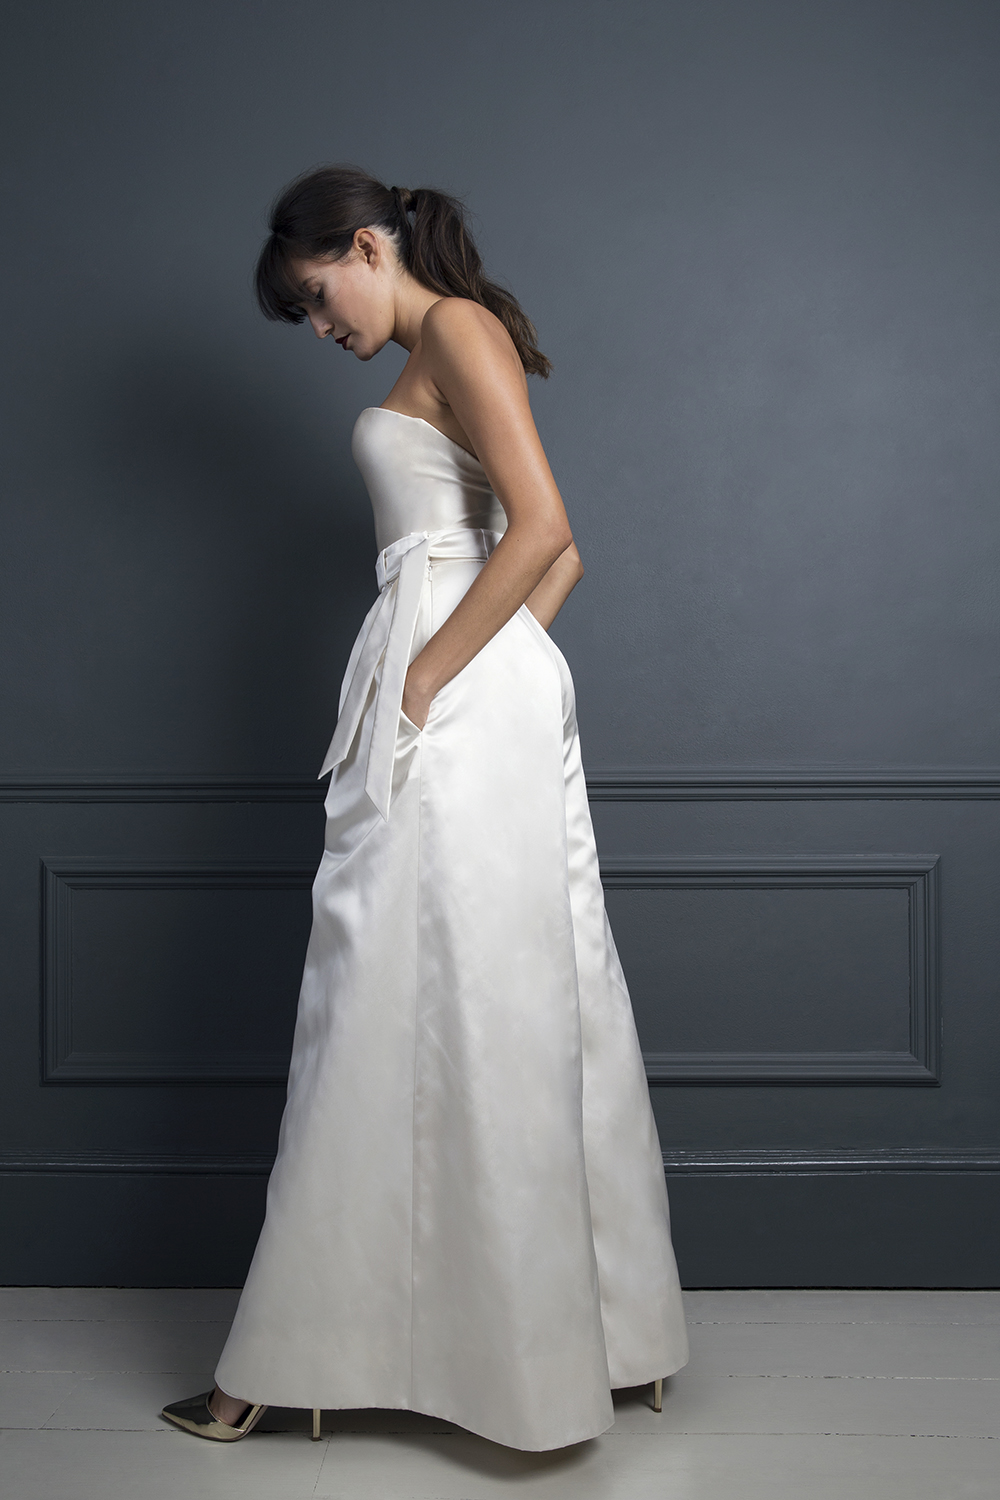 MARLENE TROUSERS & LORETTA SATIN CORSET | WEDDING DRESS BY HALFPENNY LONDON